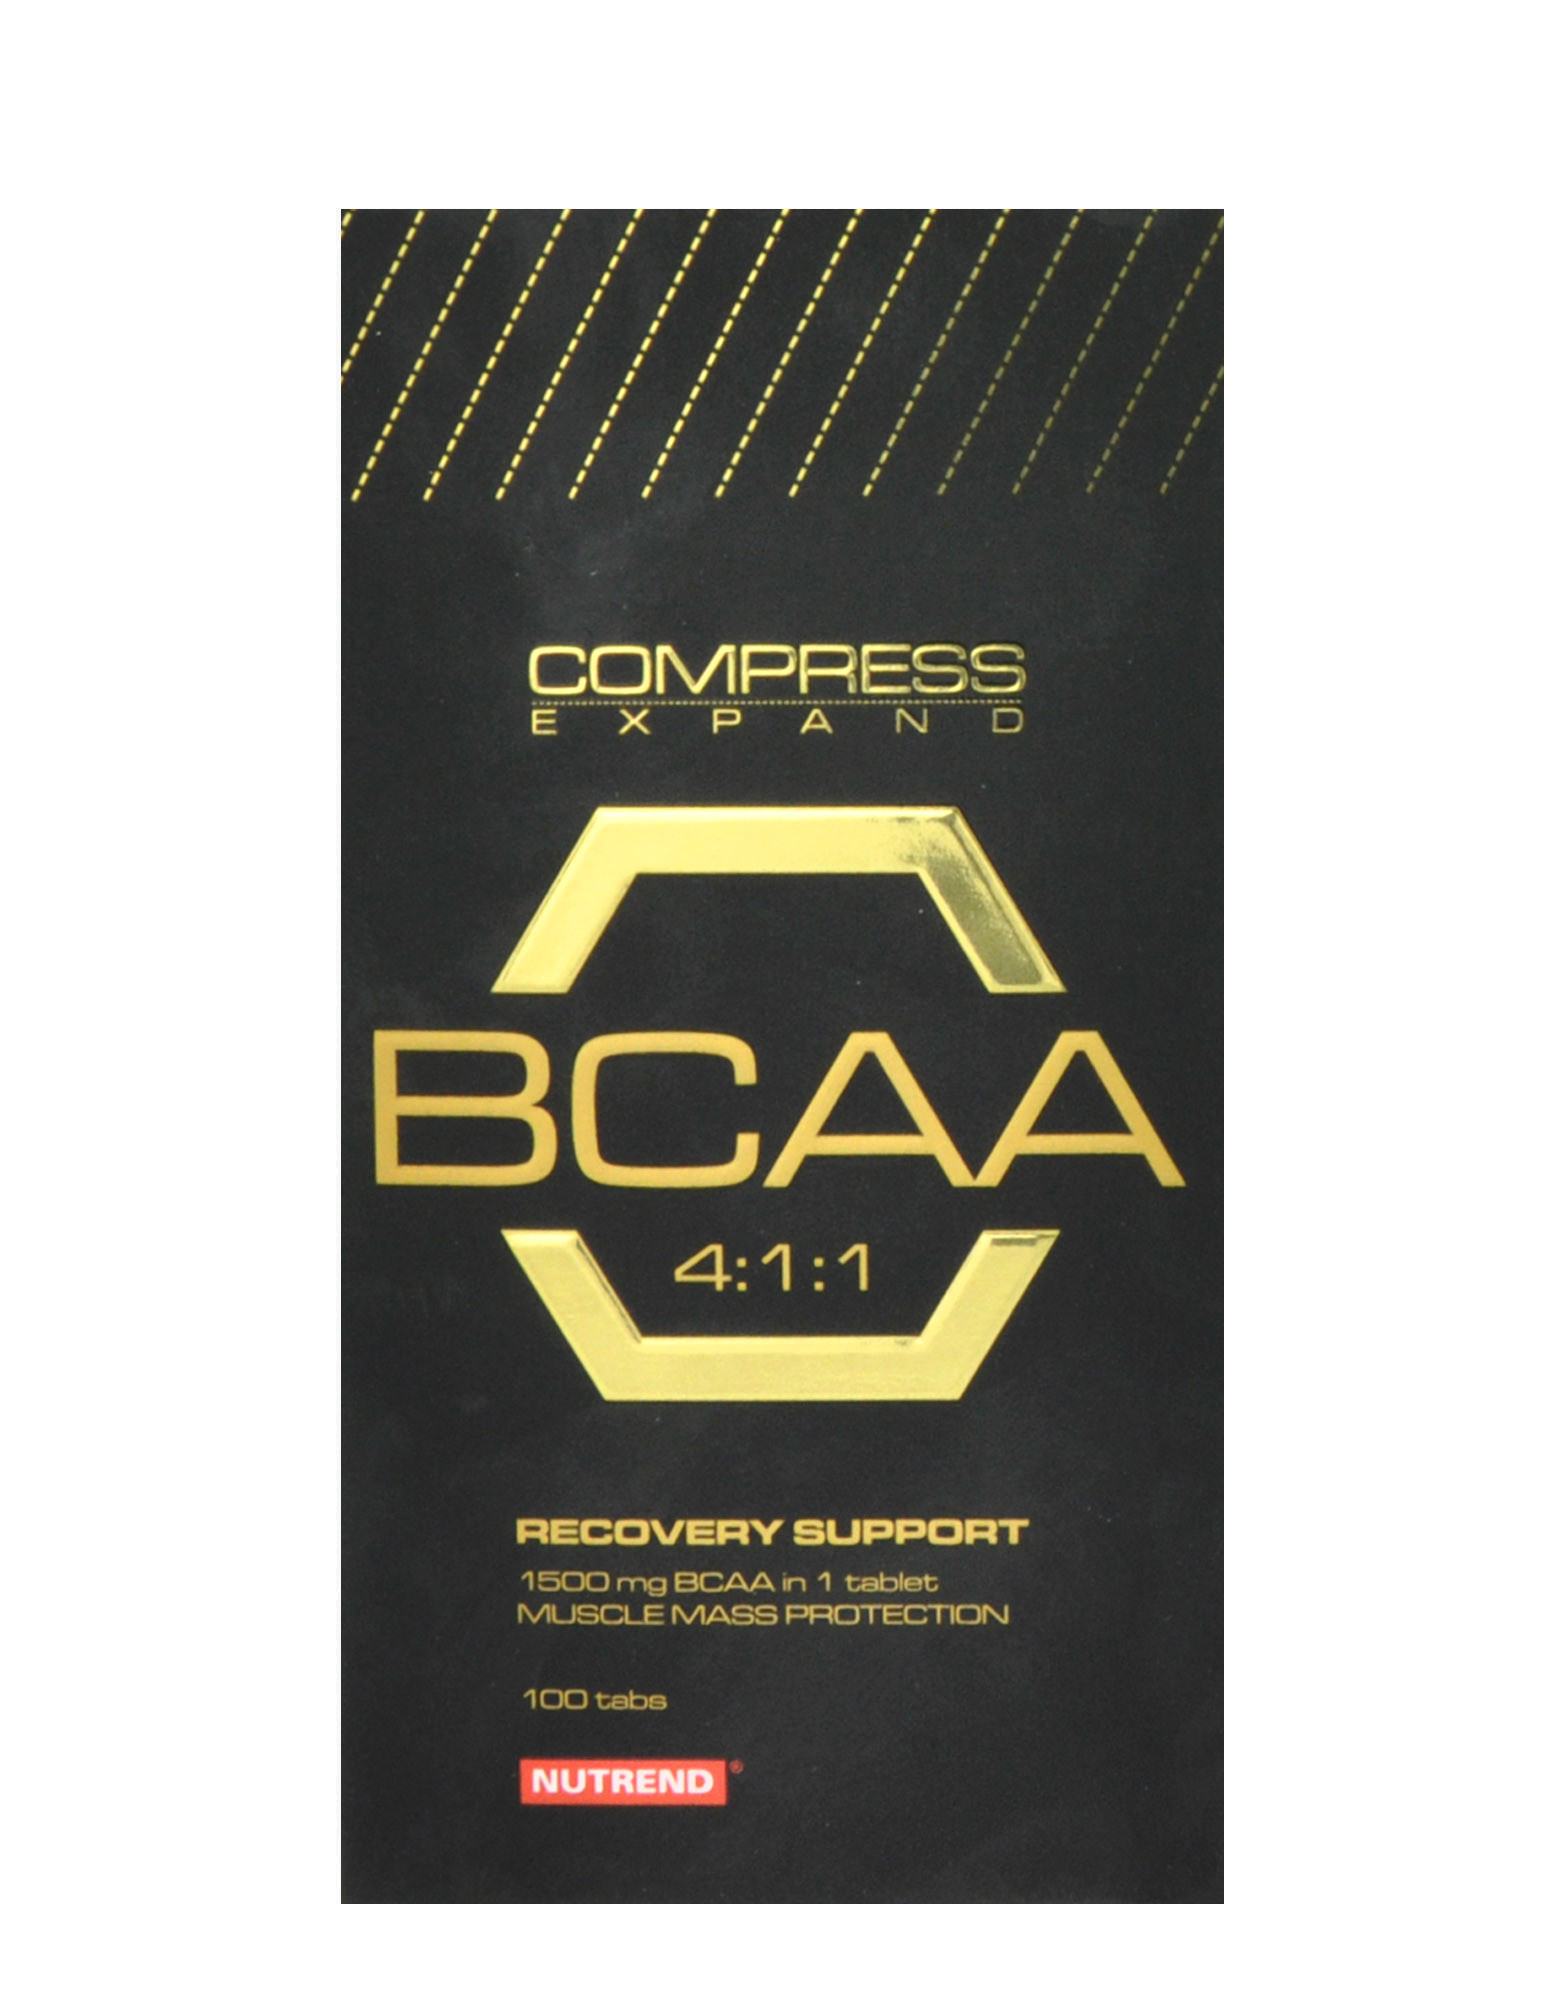 0fb7641f9 Compress Expand - BCAA 4 1 1 by NUTREND (100 tablets)